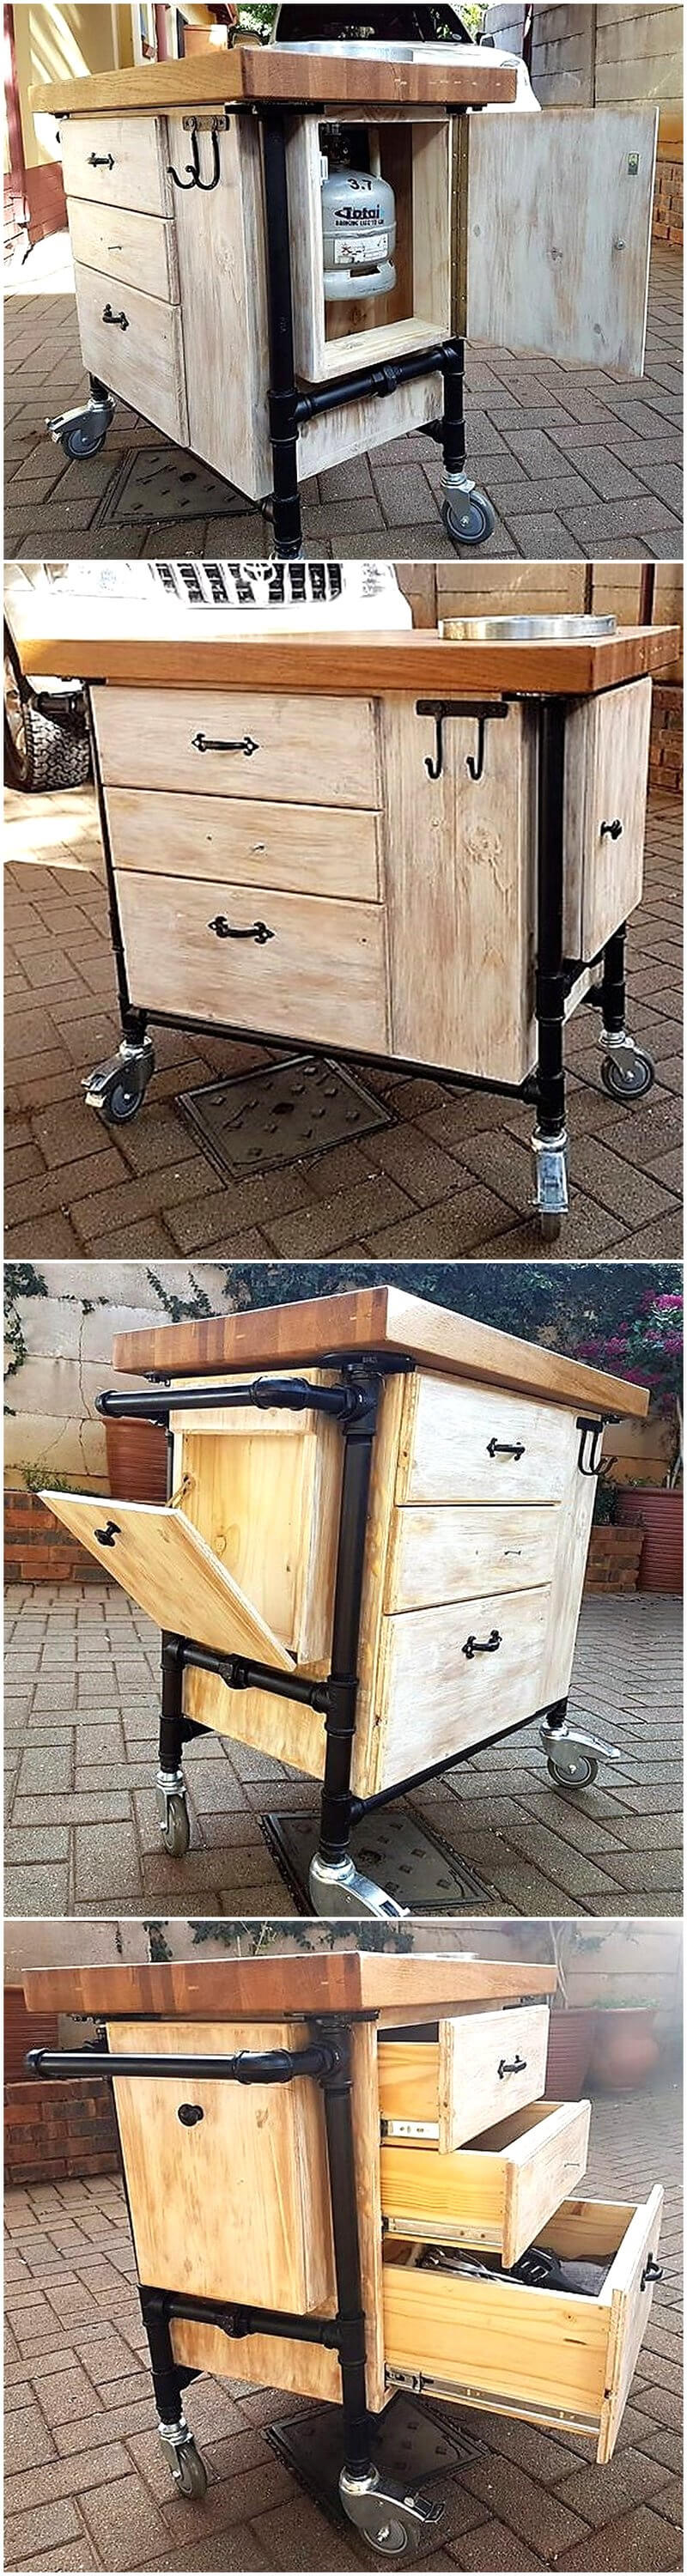 wooden pallets kitchen or patio trolley